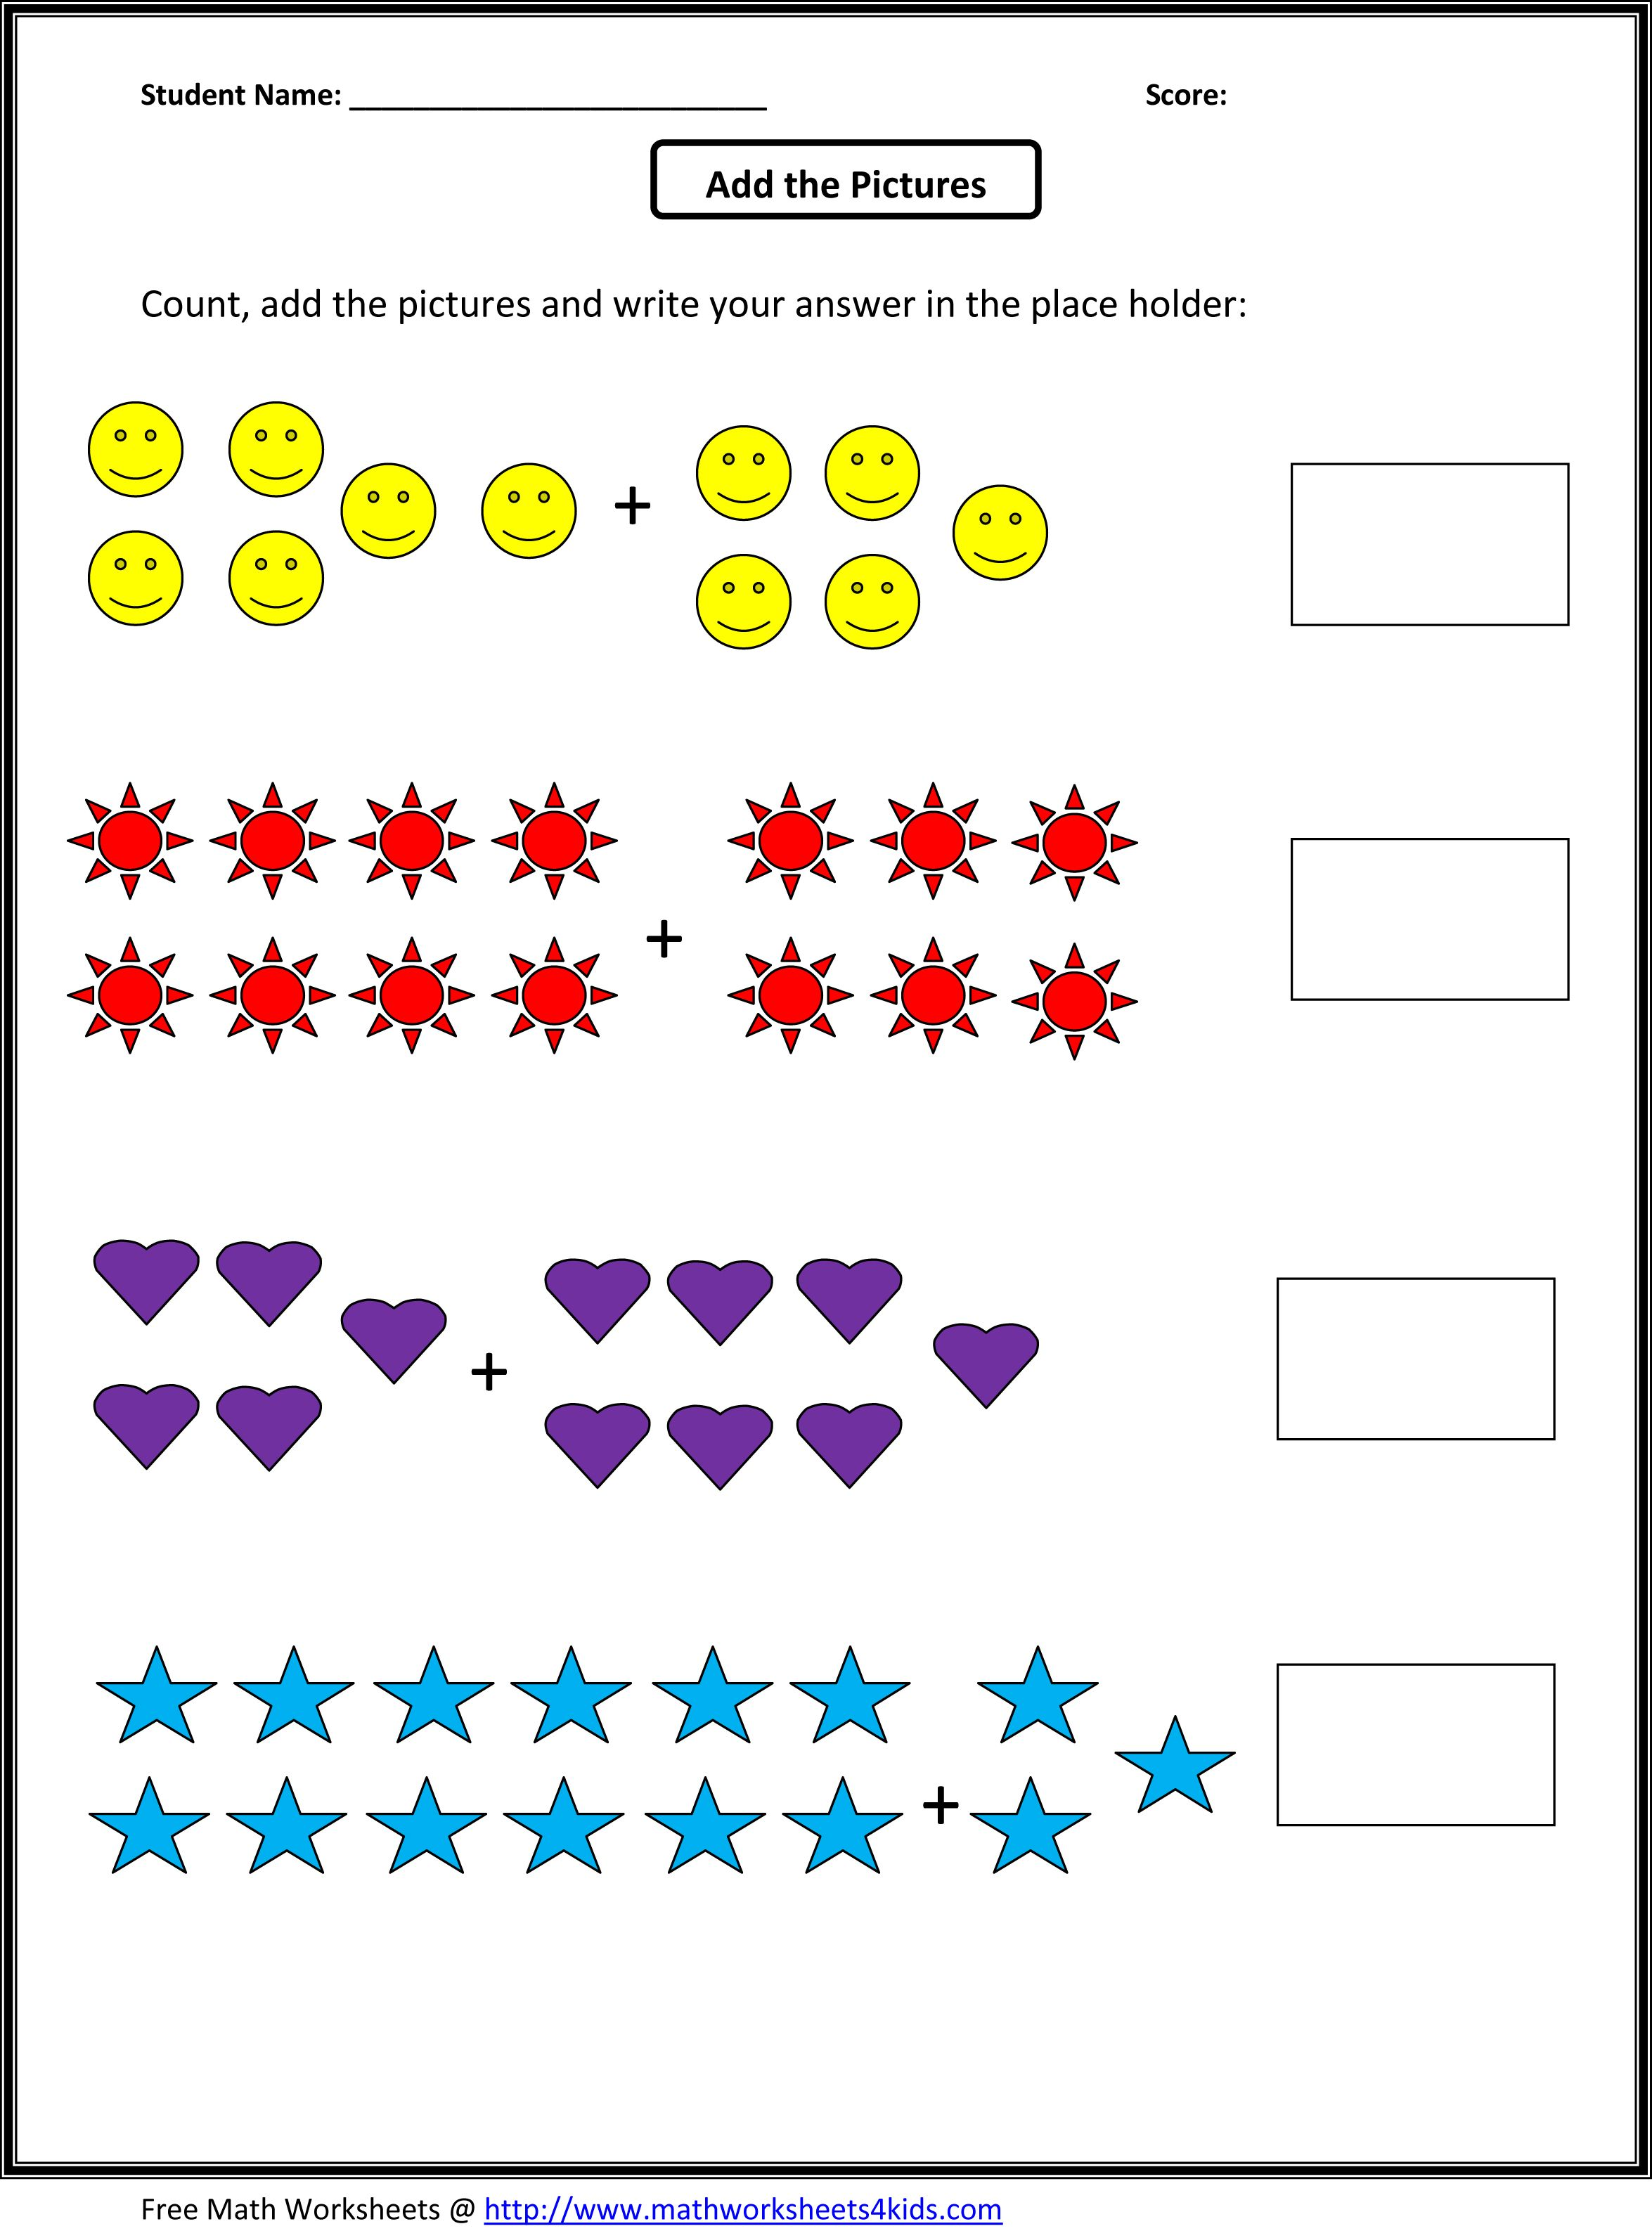 Weirdmailus  Remarkable Worksheet For Math Grade   Coffemix With Goodlooking  Images About School On Pinterest  Mental Maths Worksheets  With Agreeable Revising And Editing Worksheets Also Spanish Worksheet Answers In Addition Worksheets For First Graders And Personal Mission Statement Worksheet As Well As Conservation Of Momentum Worksheet Answers Additionally Sight Word Practice Worksheets From Coffemixcom With Weirdmailus  Goodlooking Worksheet For Math Grade   Coffemix With Agreeable  Images About School On Pinterest  Mental Maths Worksheets  And Remarkable Revising And Editing Worksheets Also Spanish Worksheet Answers In Addition Worksheets For First Graders From Coffemixcom